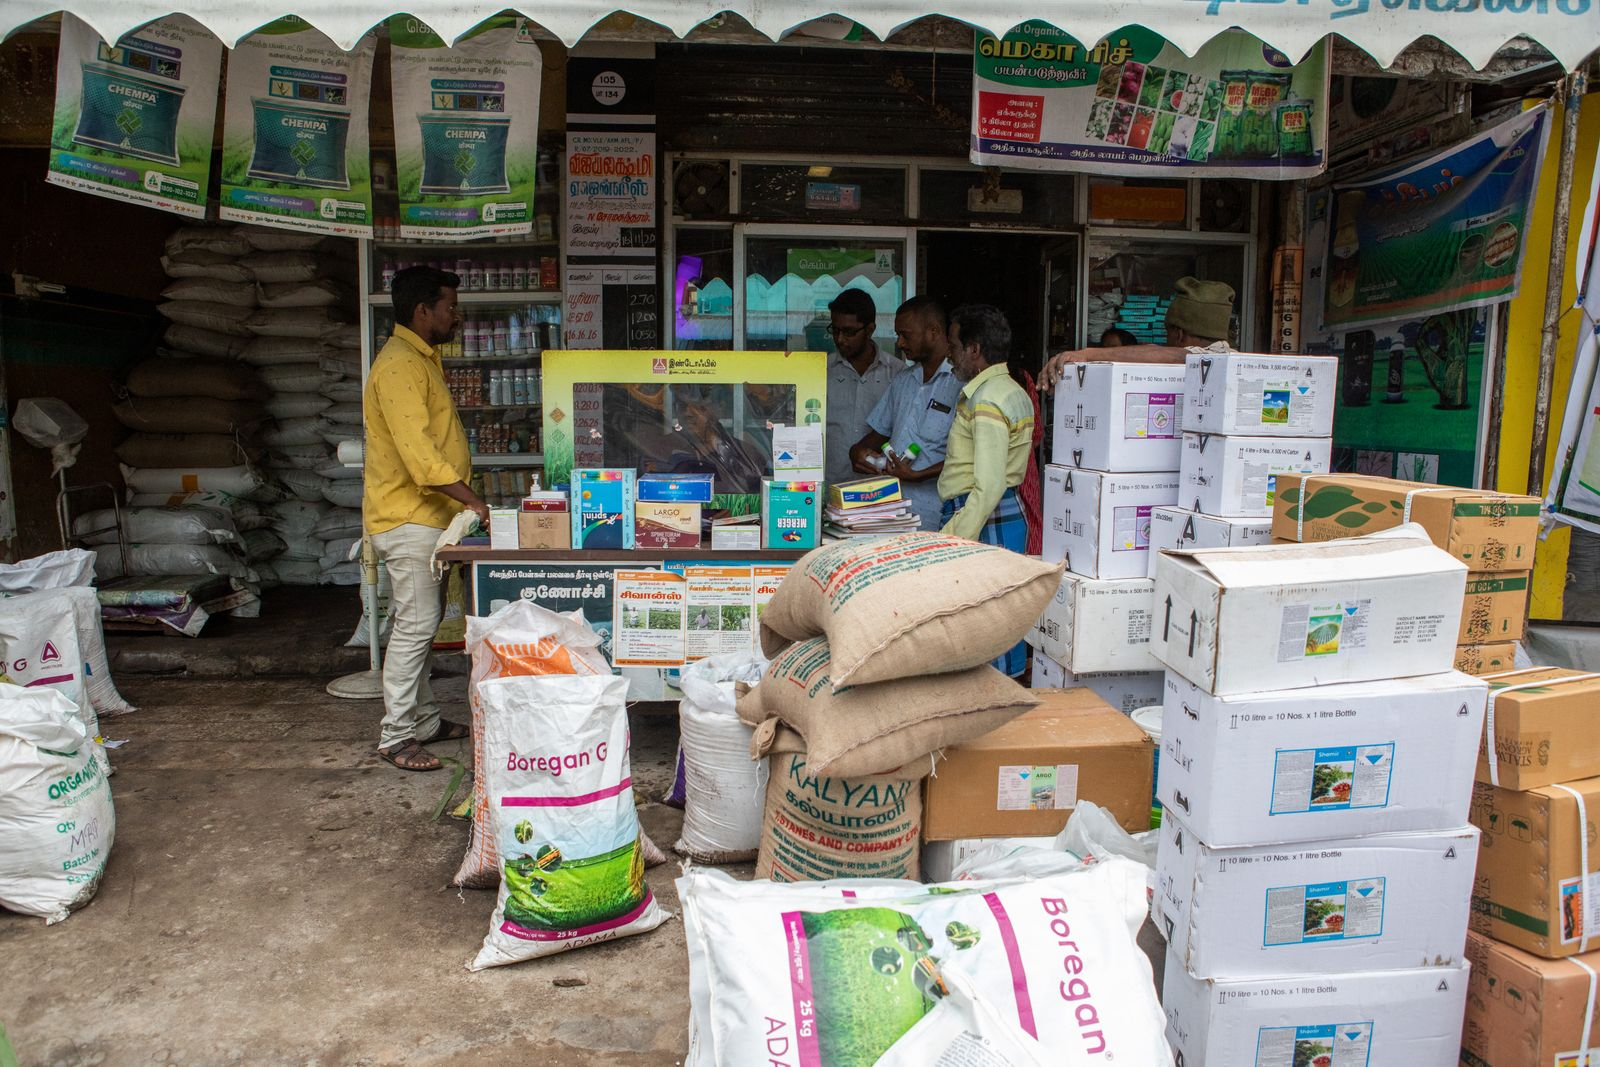 13th Jan 2021,Arkkonam in Tamil Nadu, India. A pesticide shop that sells some of the pesticides that are banned in Europe such as Jump and Sunrice. Photographer: Samyukta Lakshmi.